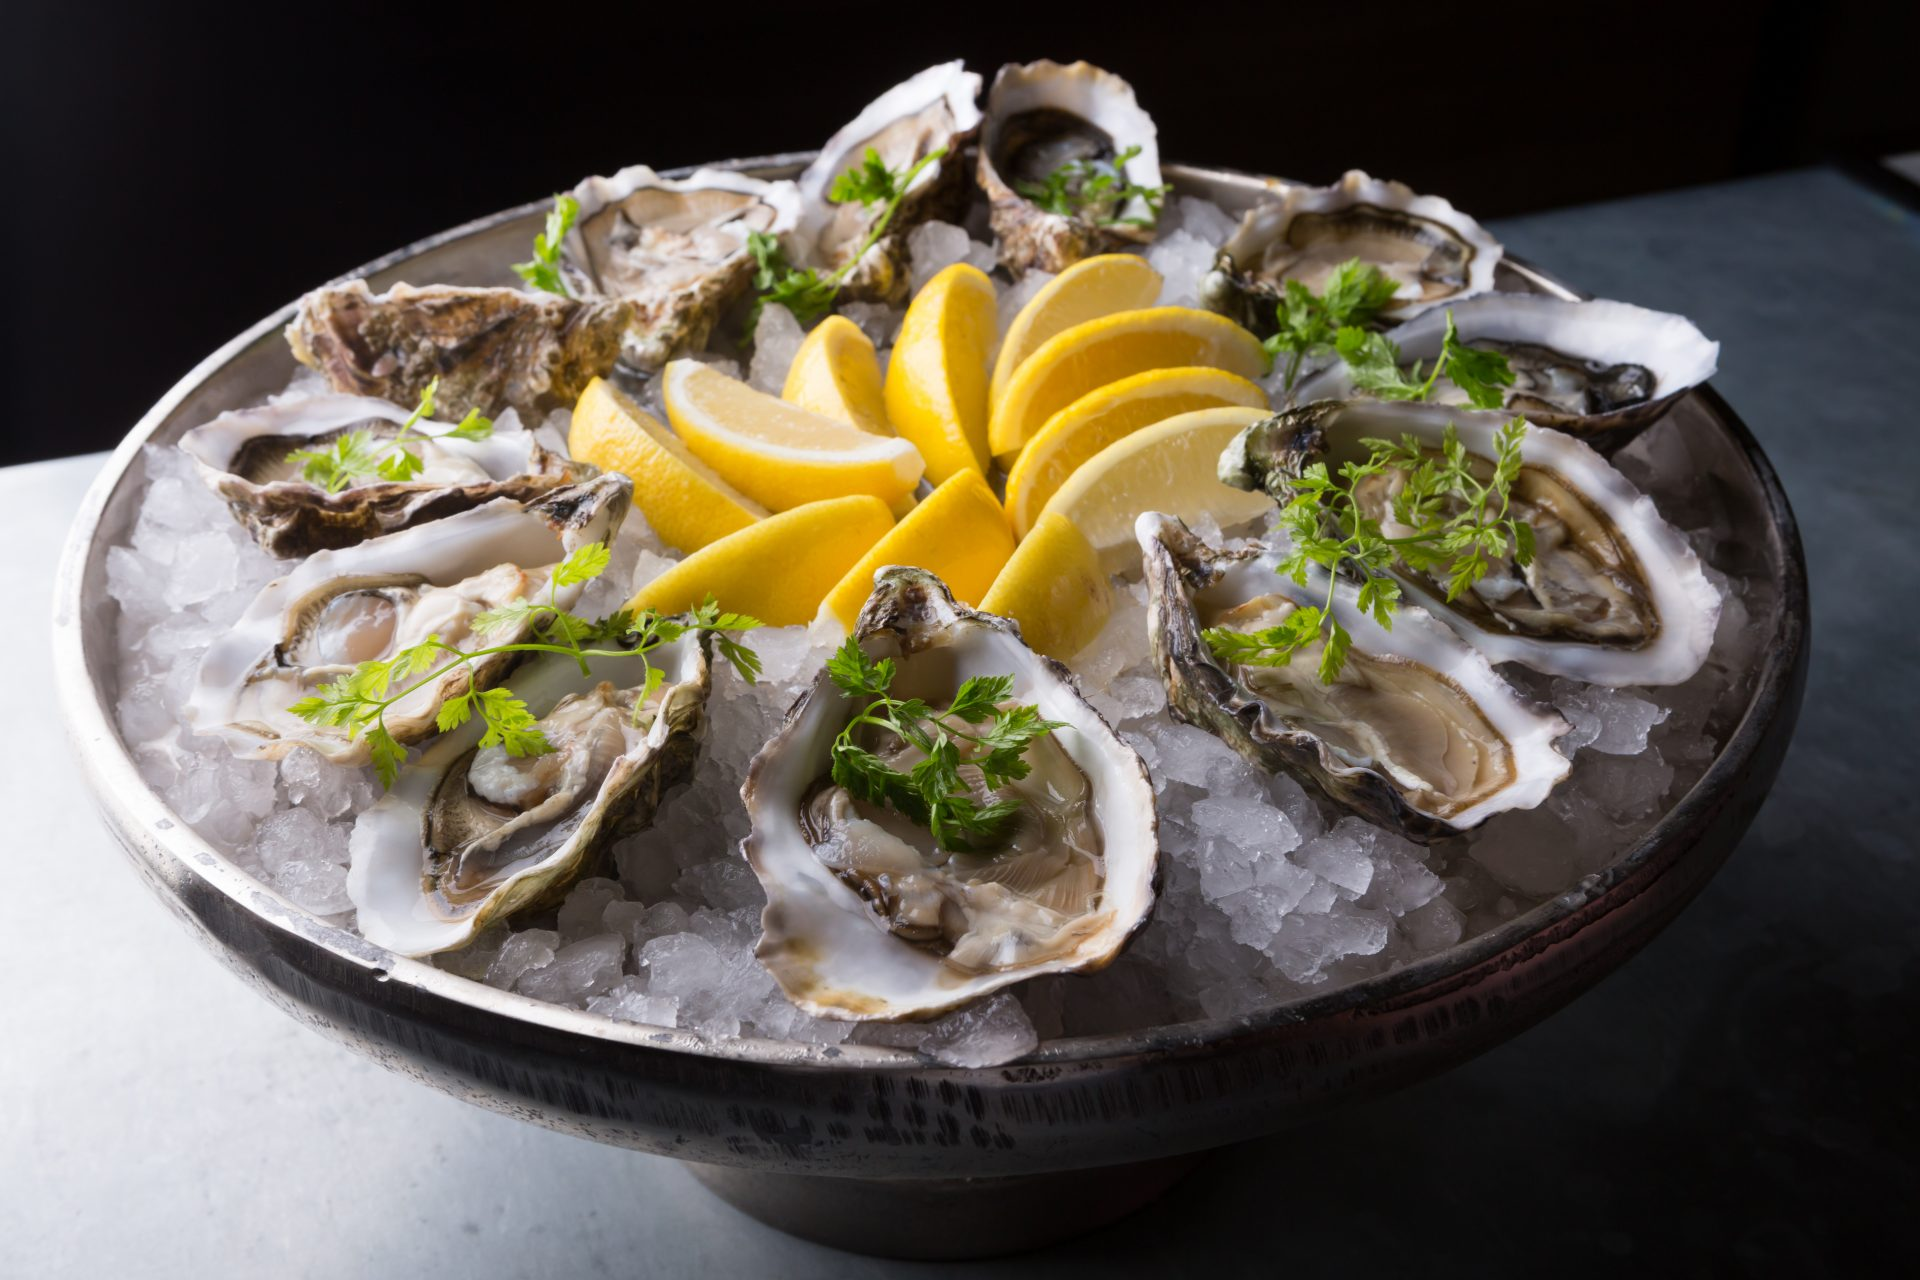 Oysters,Platter,With,Lemon,And,Ice,Served,On,A,Bar